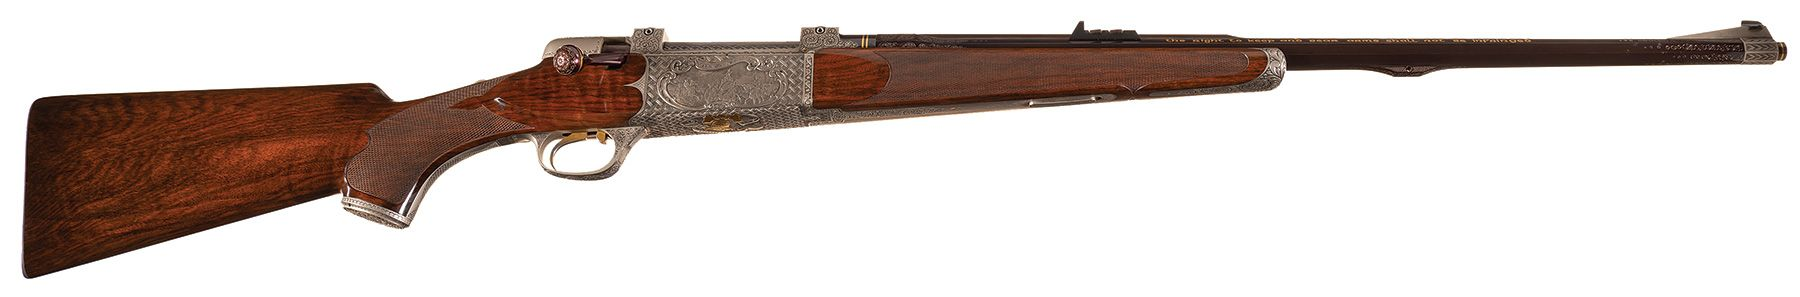 "Haskins Rifle Company ""Bicentennial"" Bolt Action Rifle"